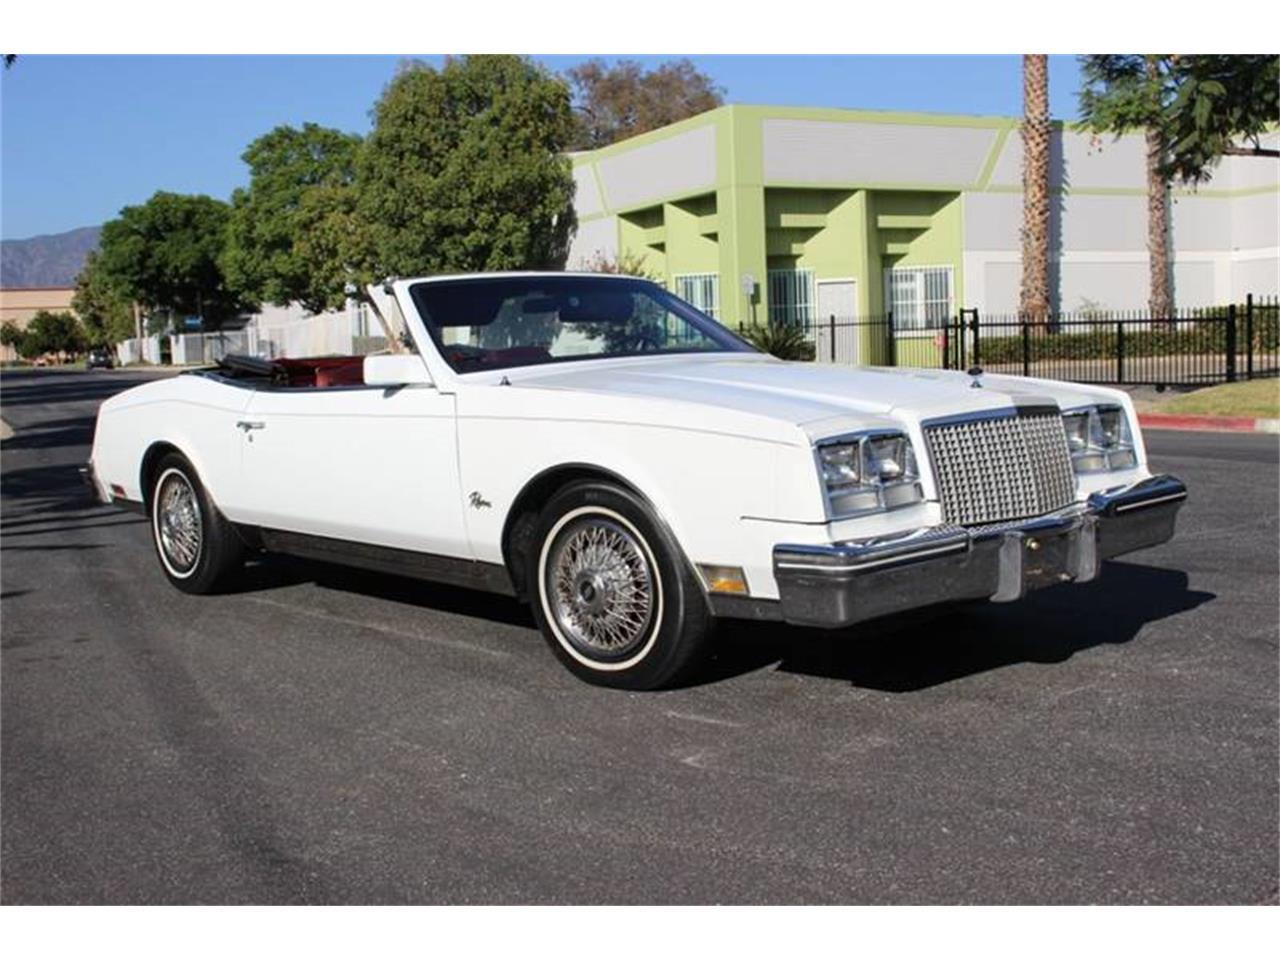 1982 Buick Riviera (CC-1274785) for sale in La Verne, California